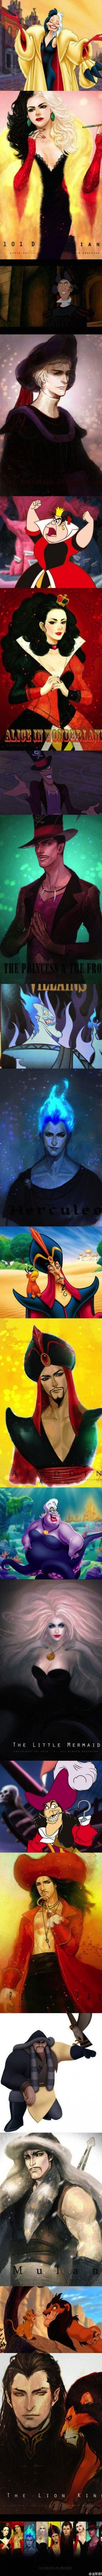 Japanese Anime vs Disney Cartoons: Holy crap! Who knew being evil could make you so hot!